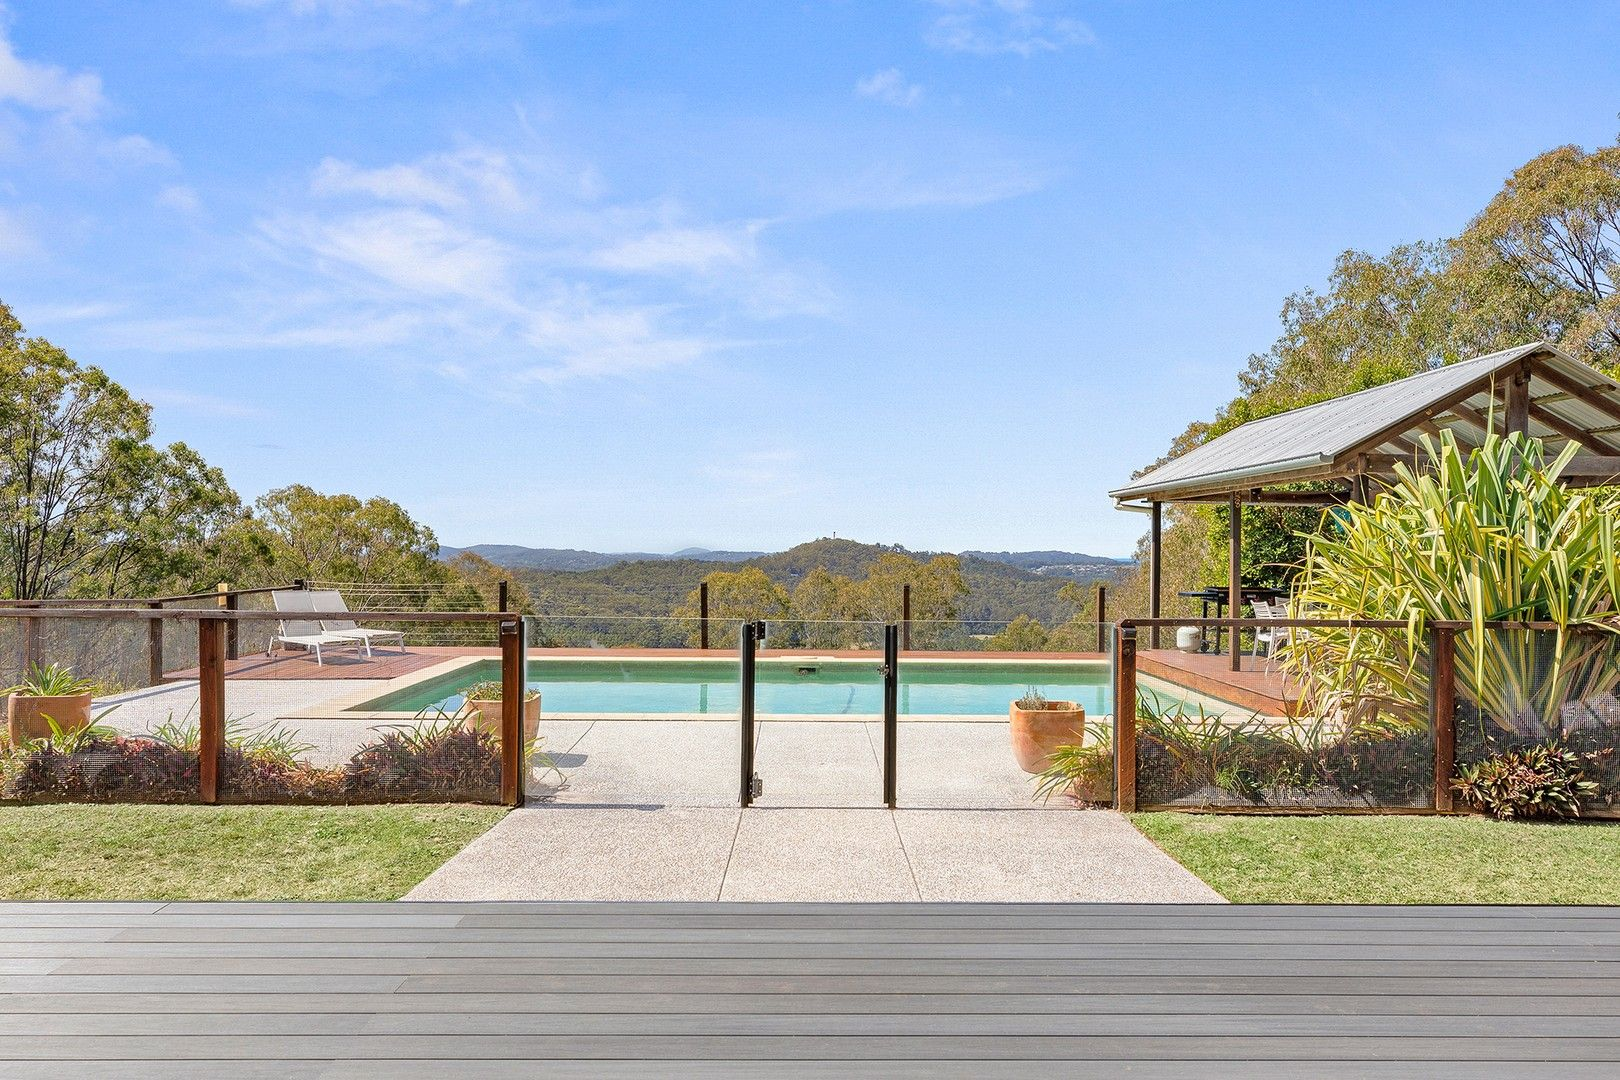 65-75 Barsons Rd, Montville QLD 4560, Image 0